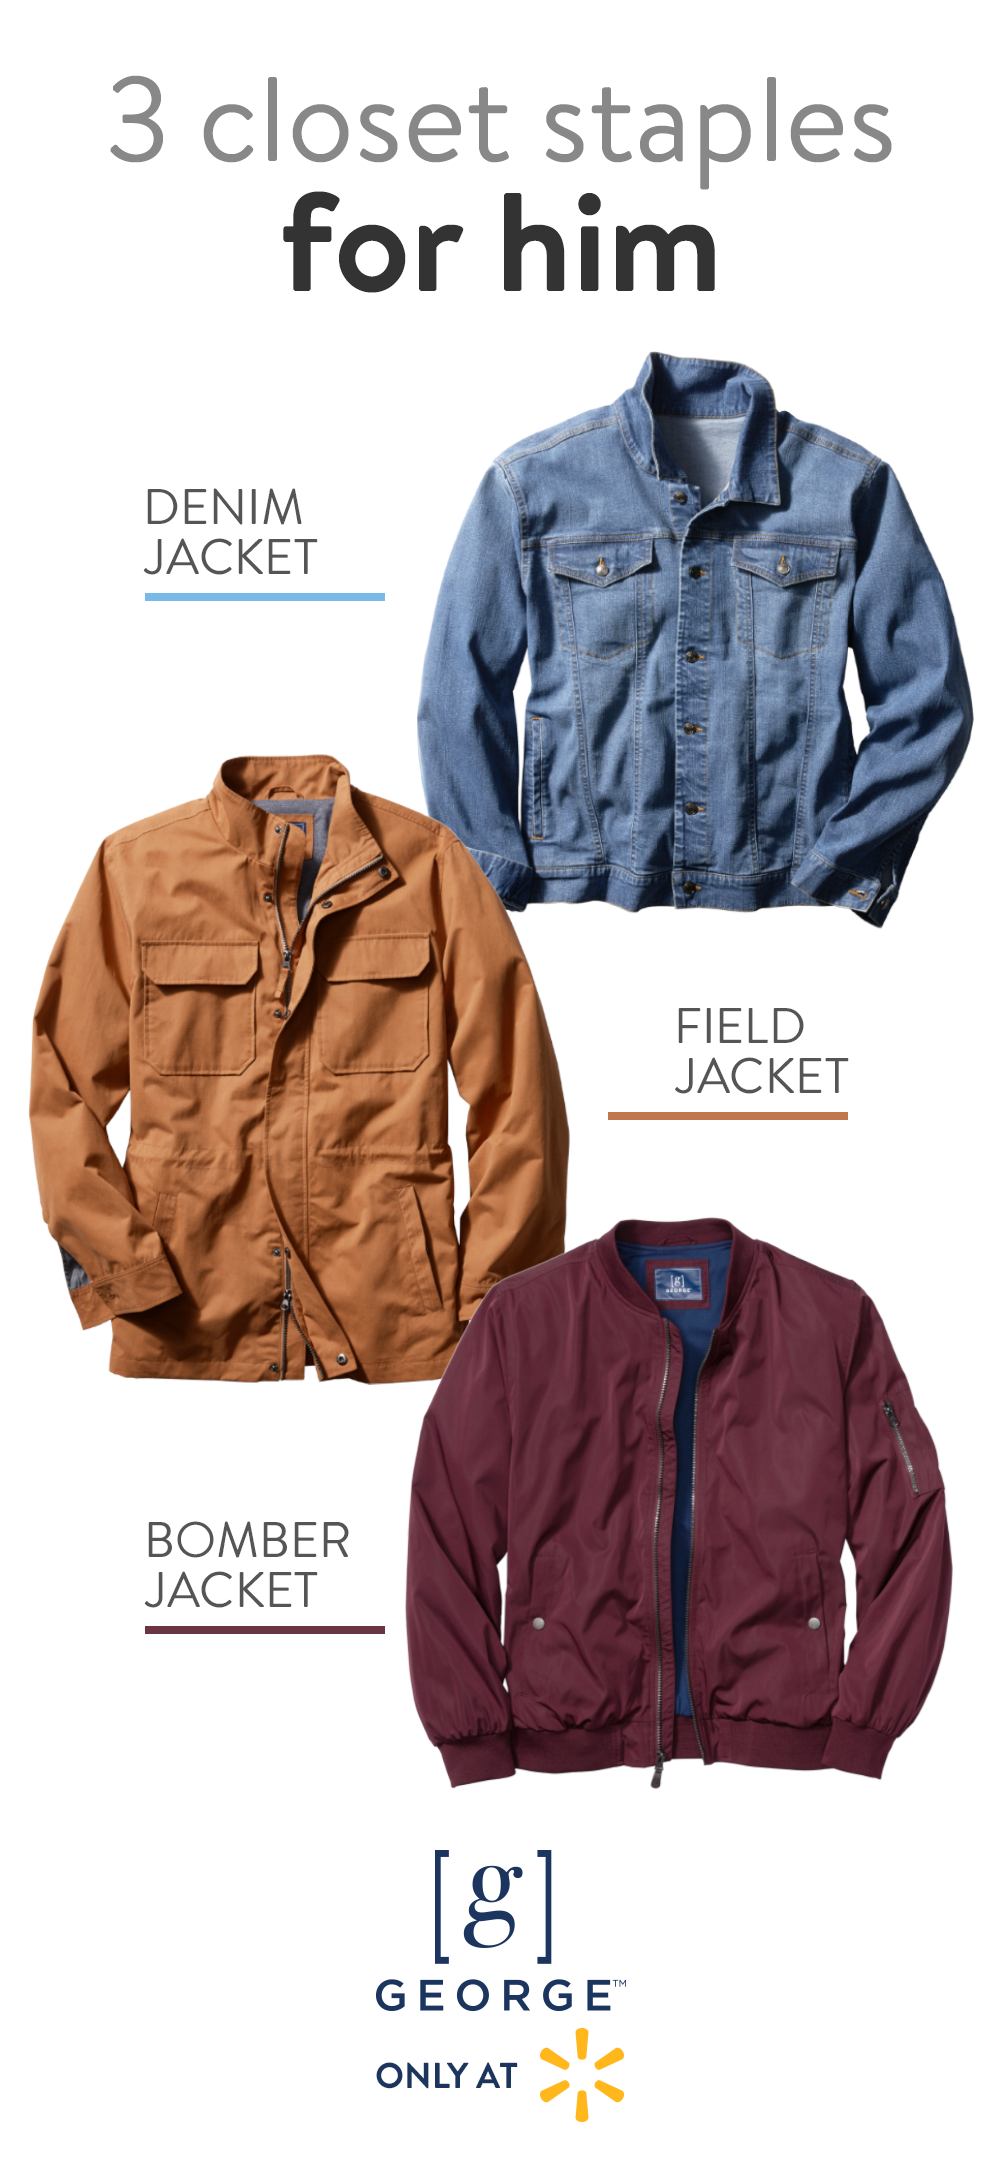 Get A Jacket For Every Adventure With George Only At Walmart These Three Styles Denim Field And Bomber Will Comp Jackets Only At Walmart Walmart Fashion [ 2160 x 1000 Pixel ]